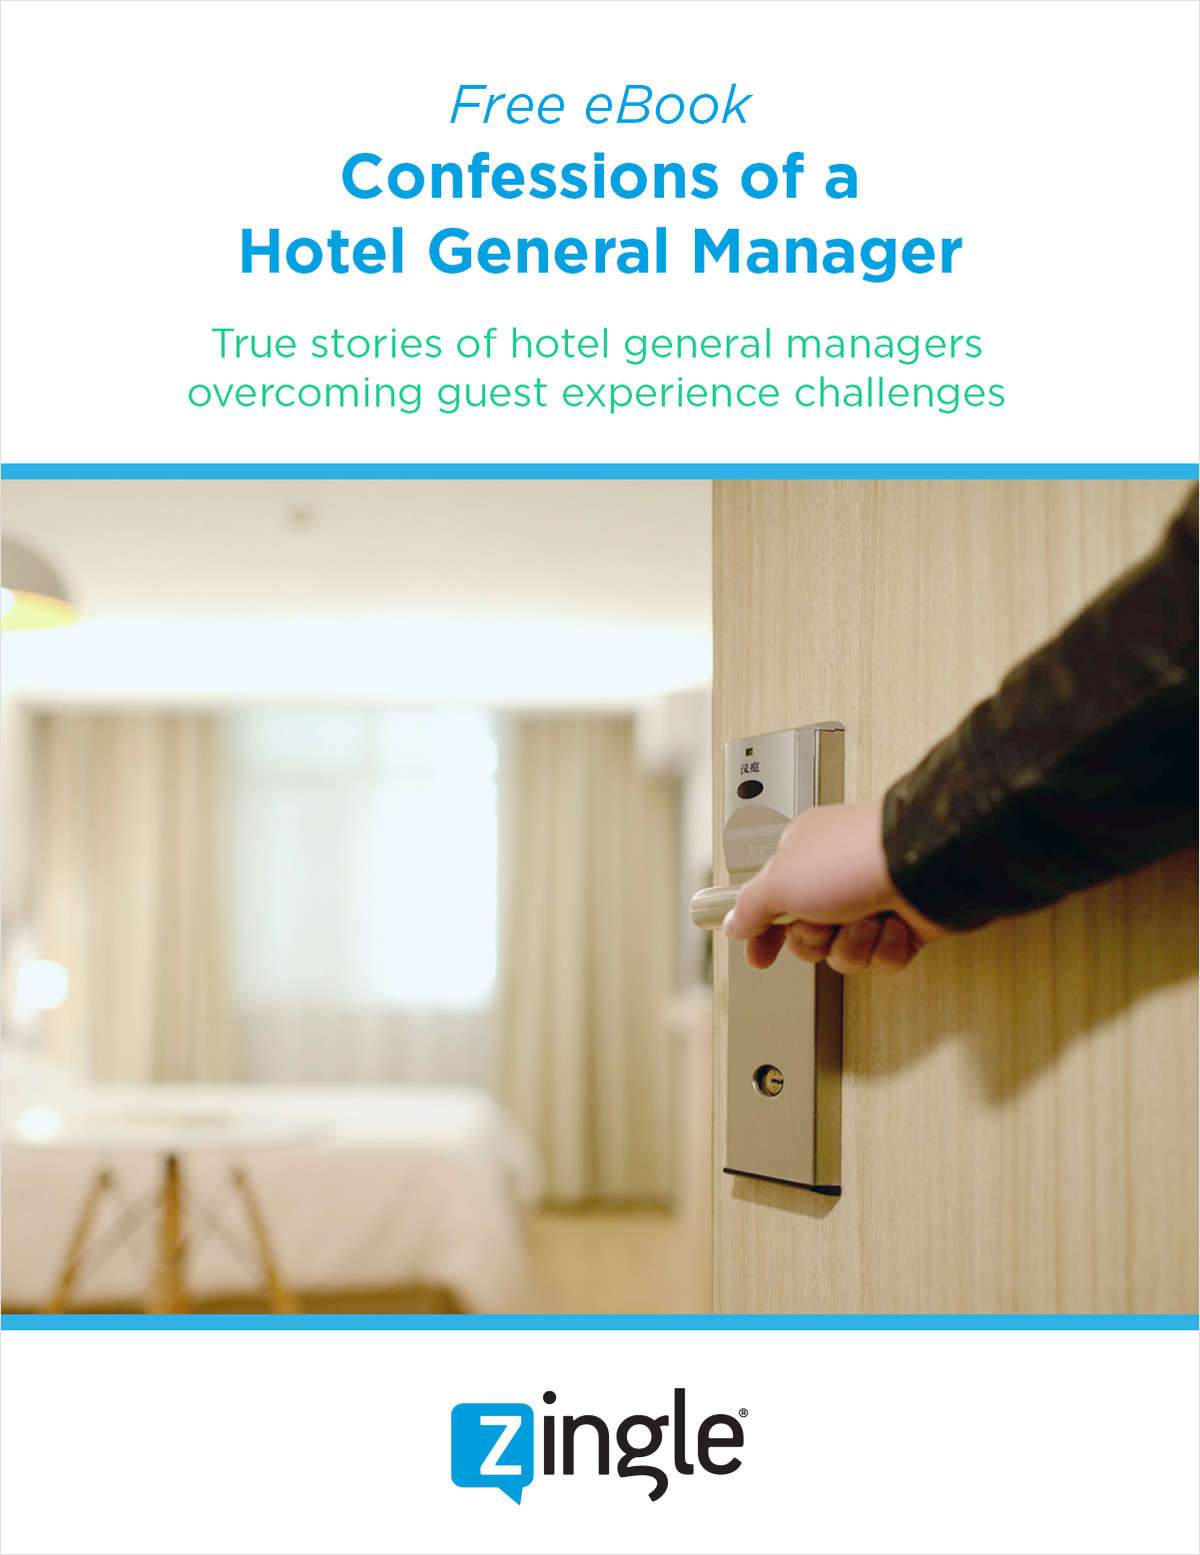 Confessions of a Hotel General Manager